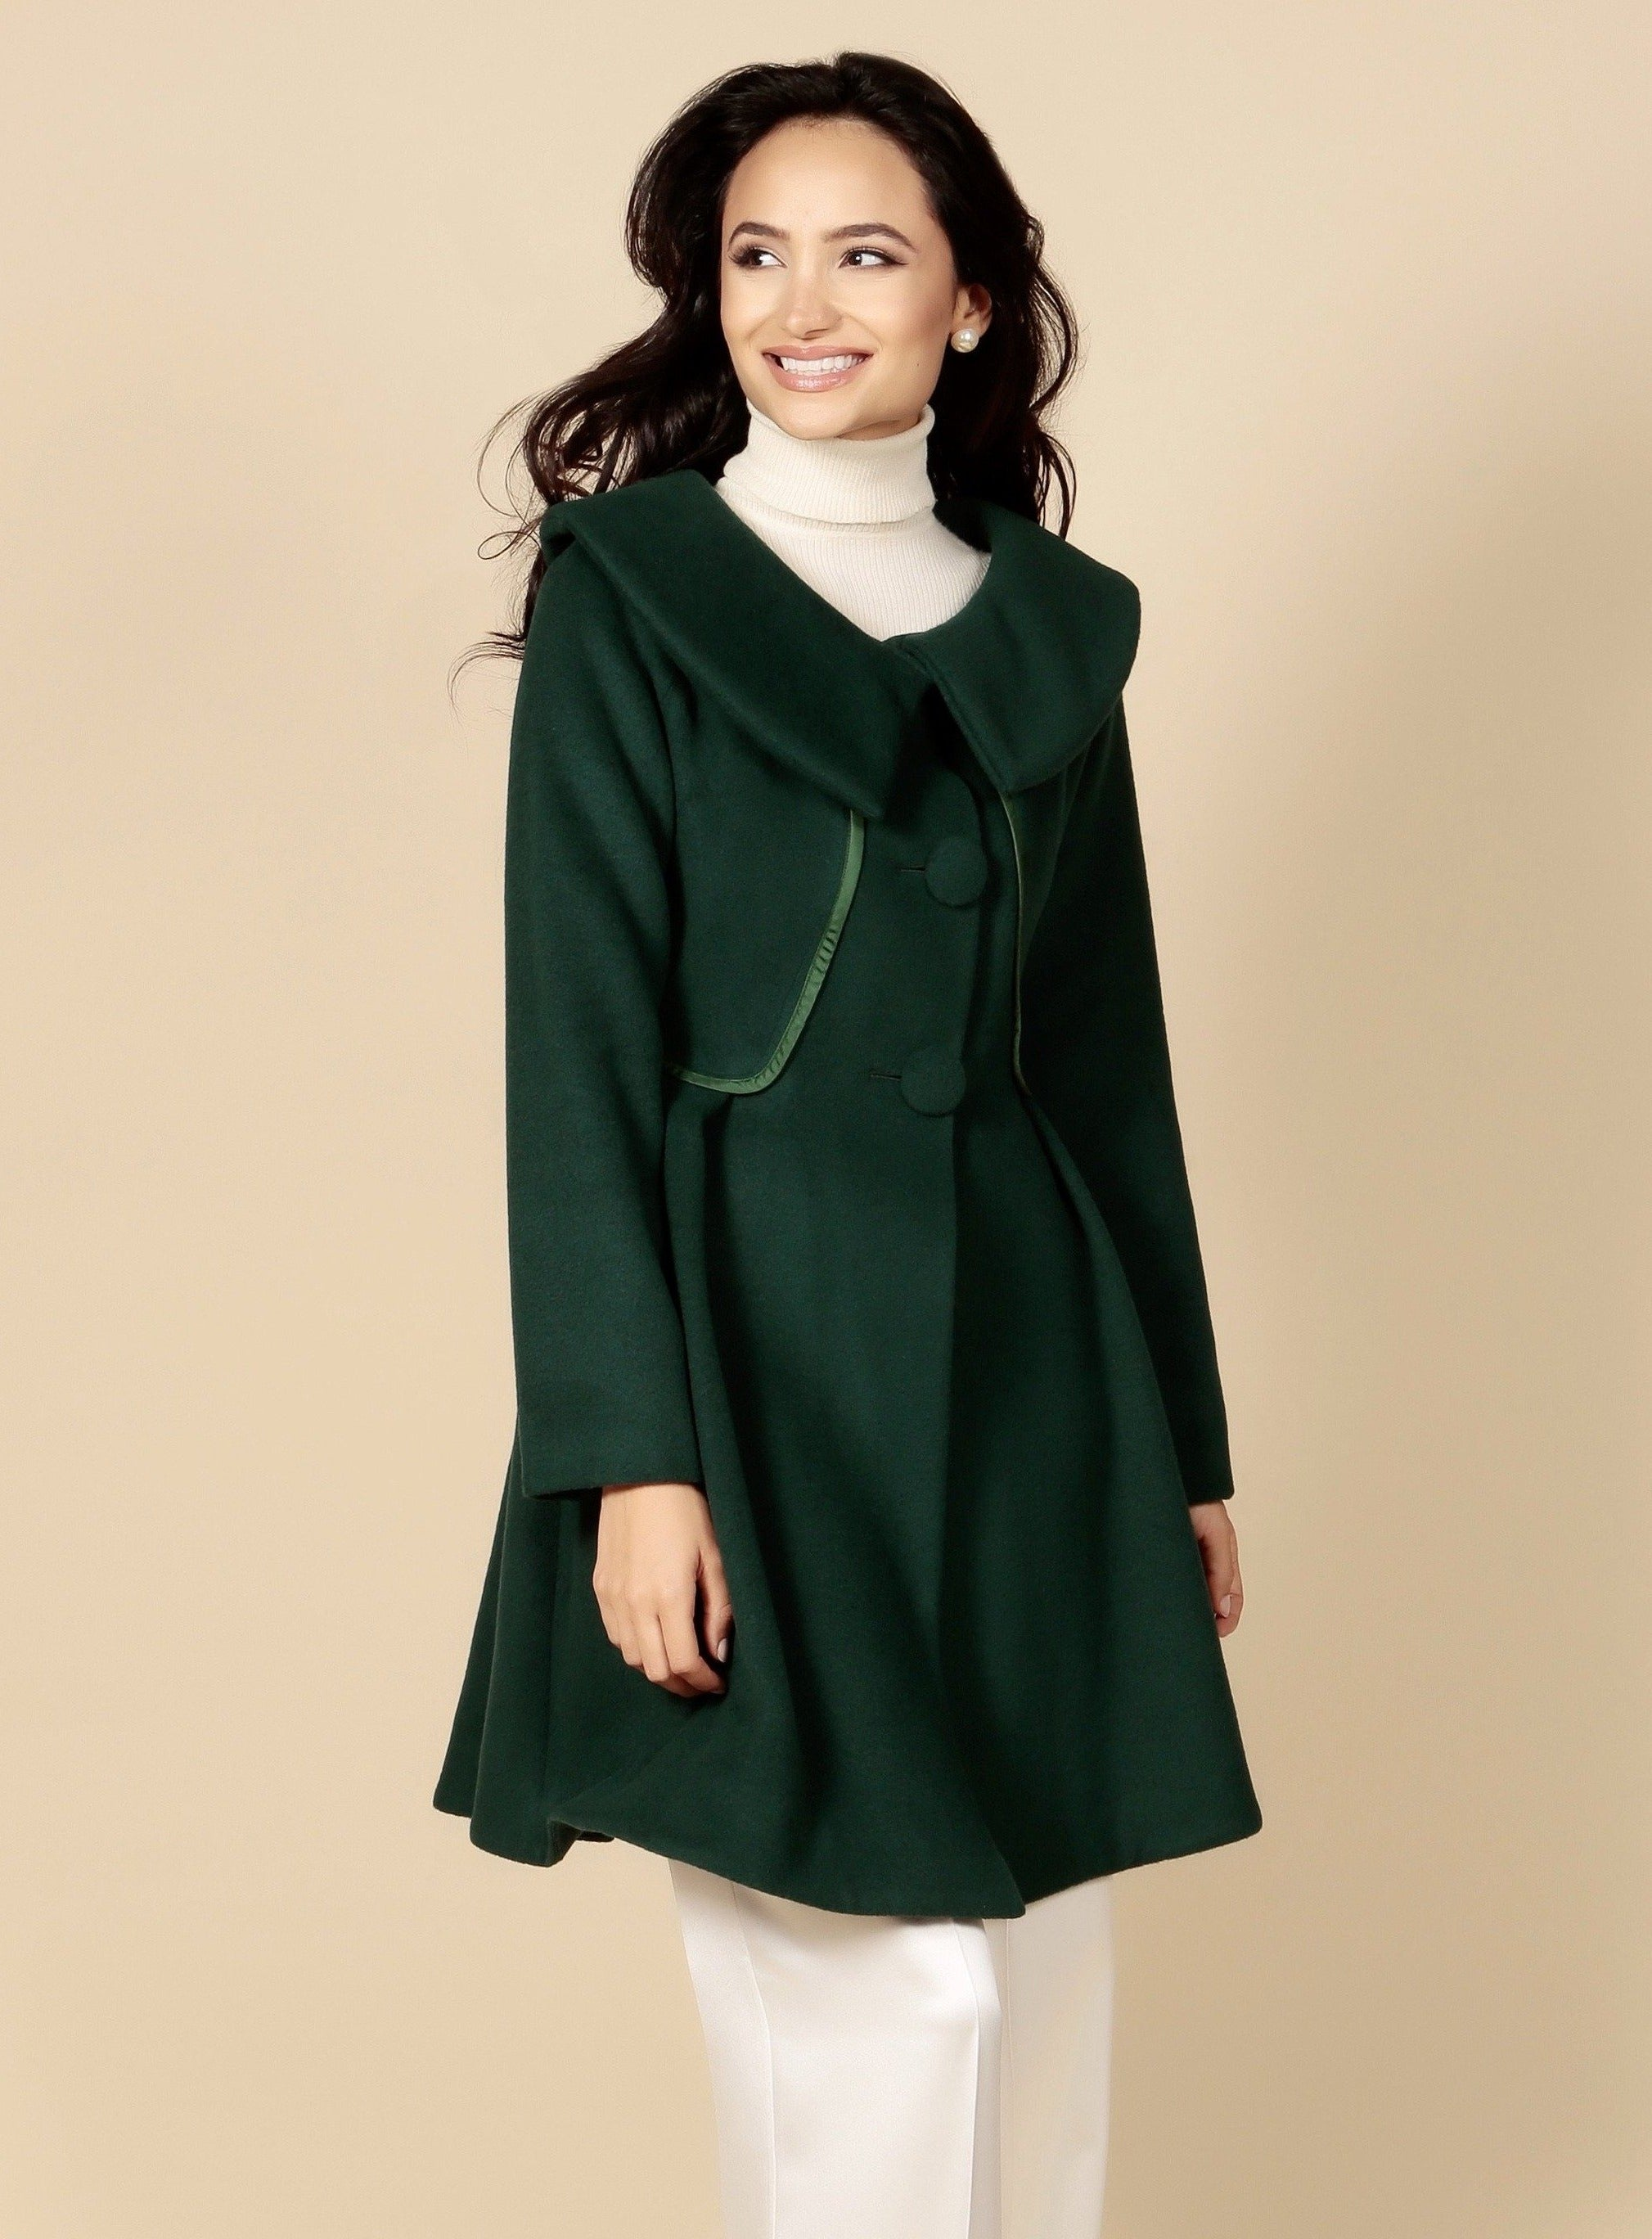 'Pillow Talk' Italian Cashmere and Wool Dress Coat in Verde